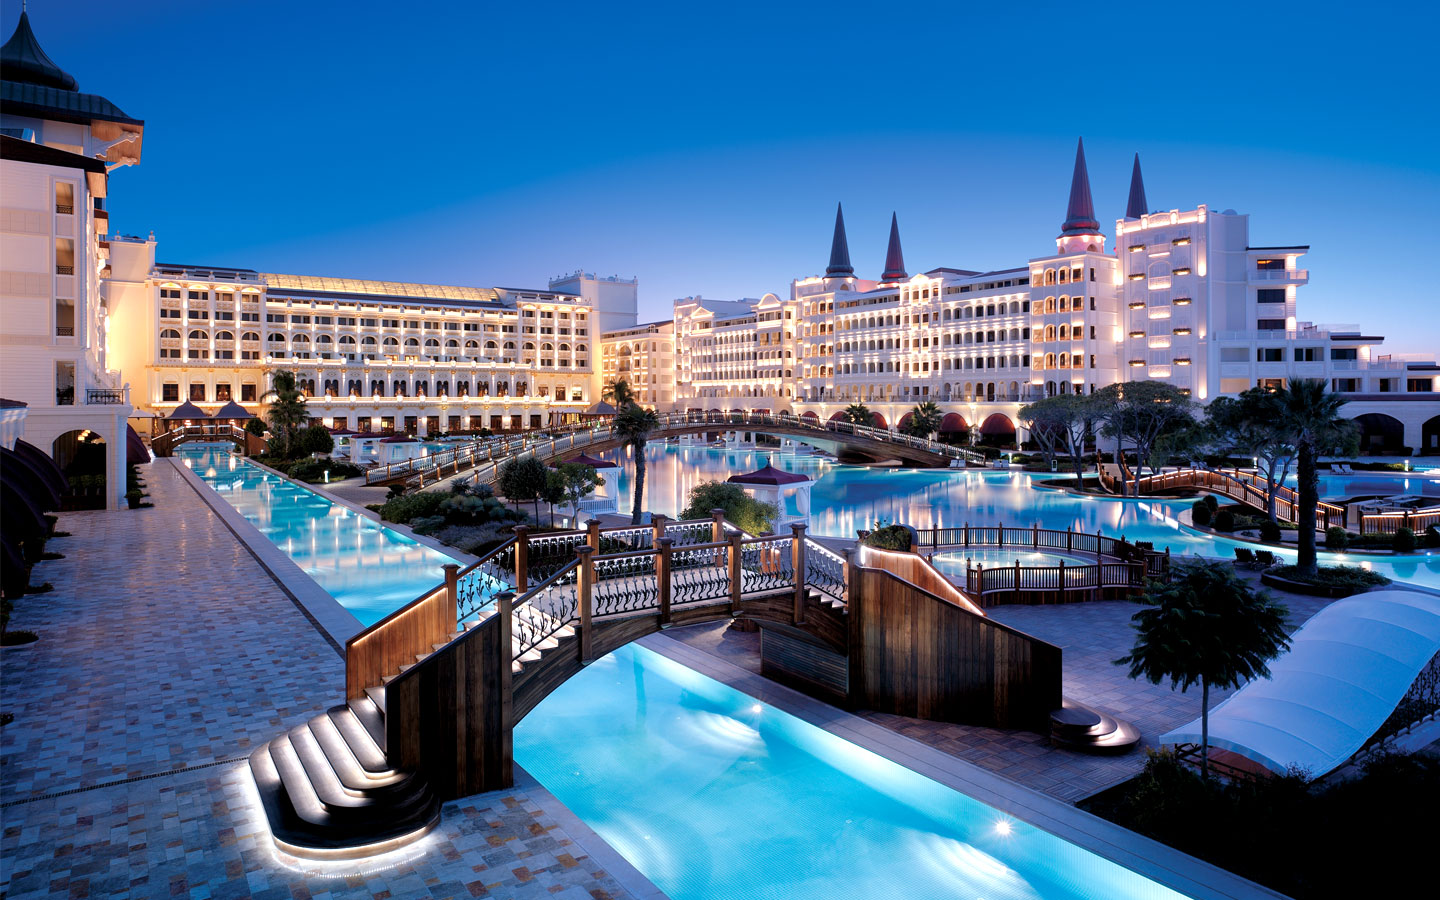 World visits mardan palace most luxury hotel in turkey for The most expensive hotel in the world